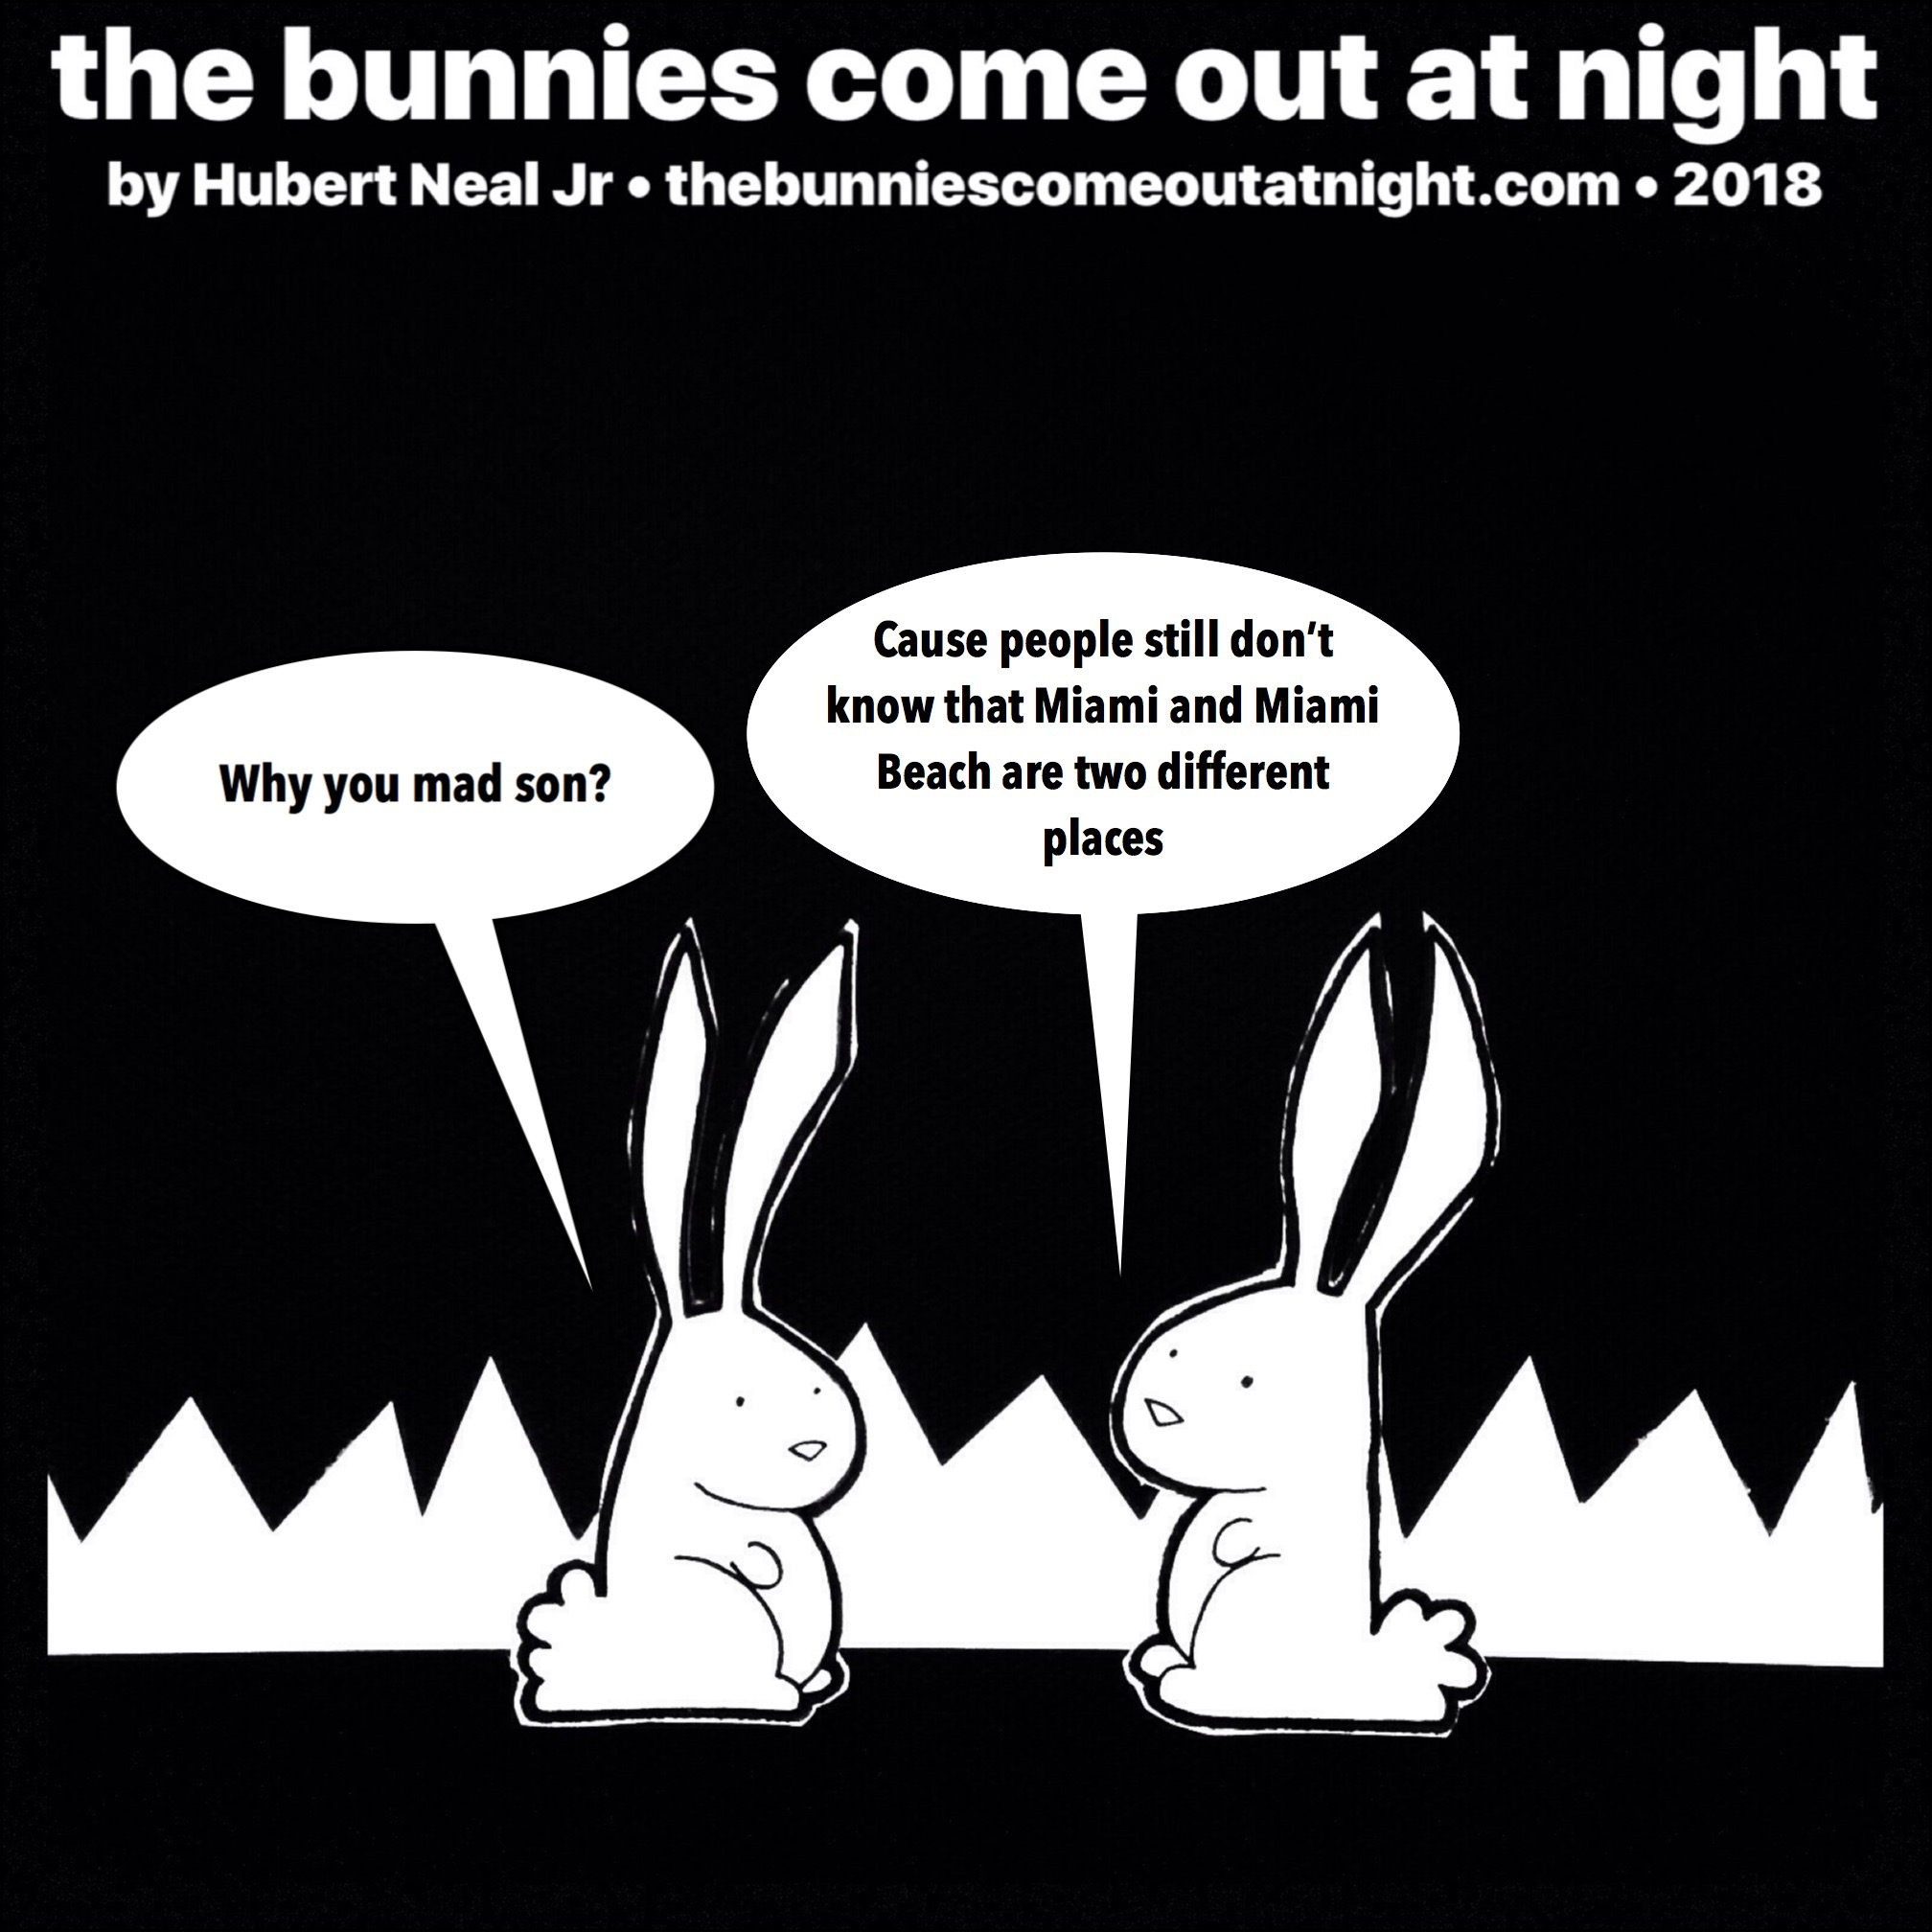 the bunnies come out at night